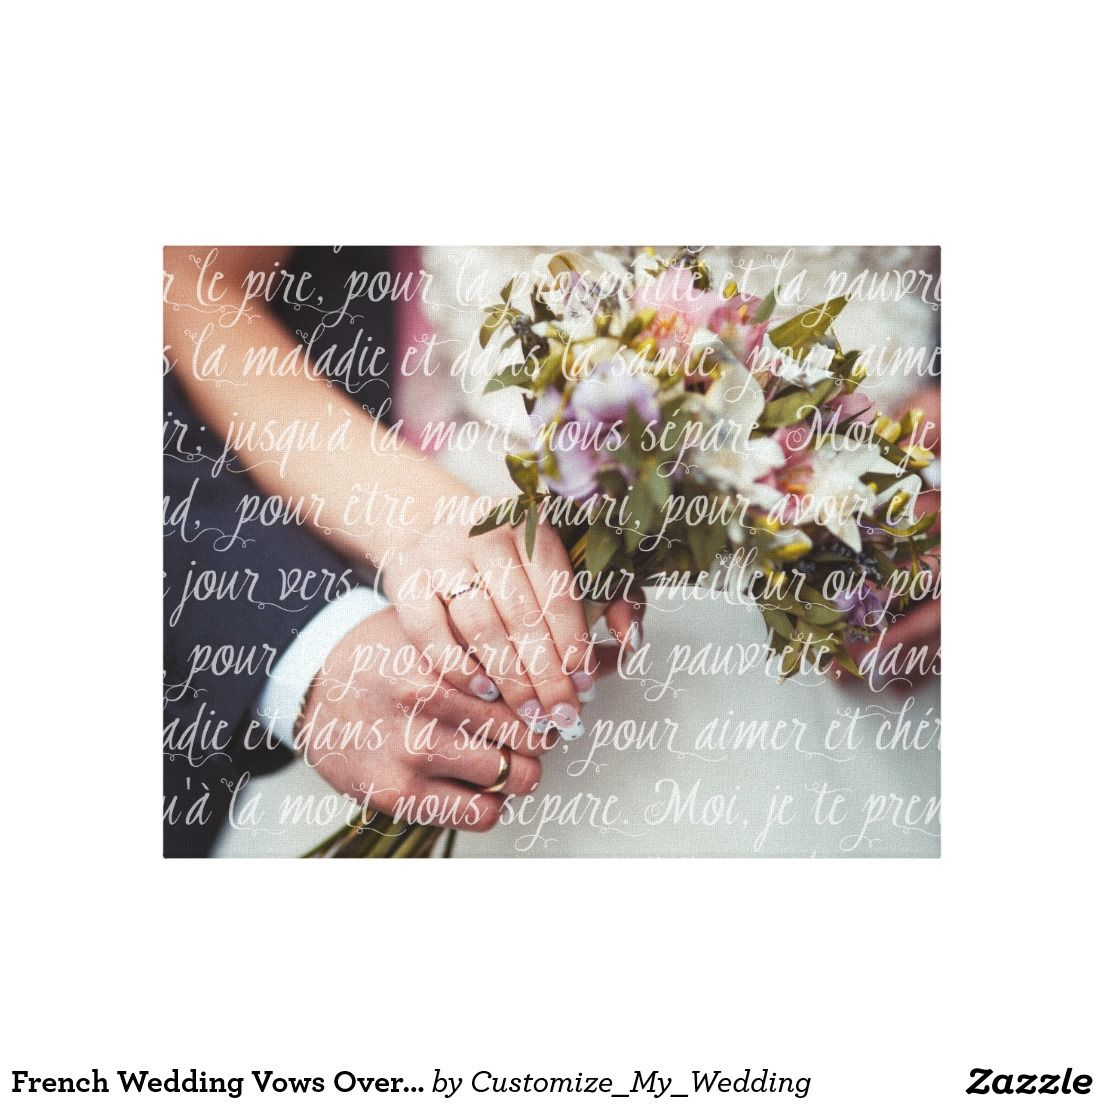 French Wedding Vows Overlay On Your Wedding Photo Canvas Print Zazzle Com Wedding Photo Canvas Wedding Vows French Wedding